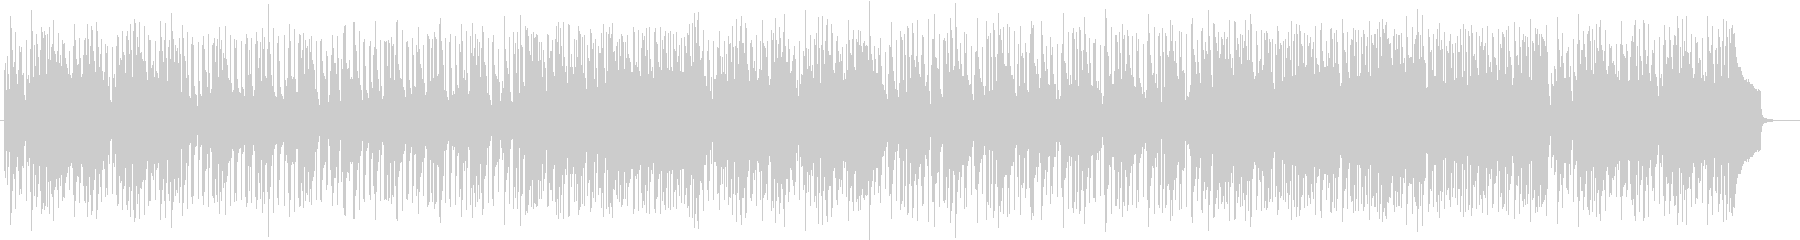 A fashionable and cute song's unreproduced waveform